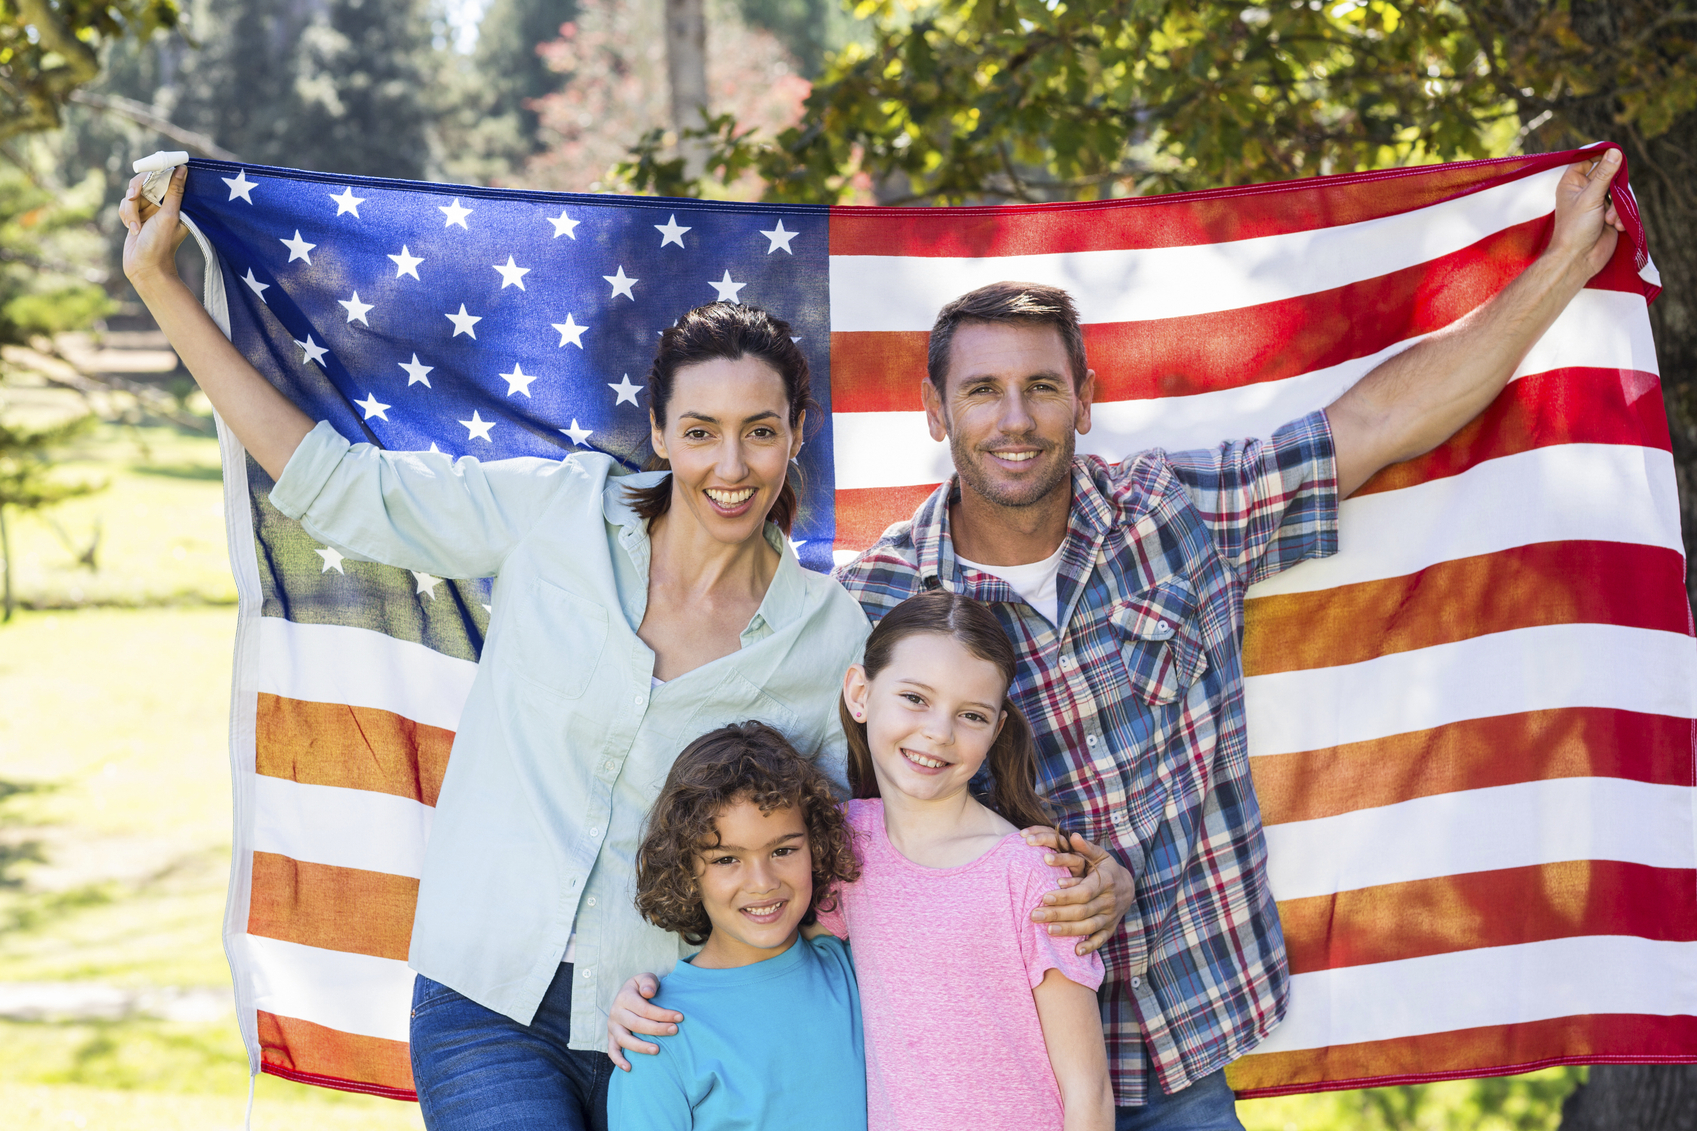 Happy family smiling with an american flag in a park on a sunny day